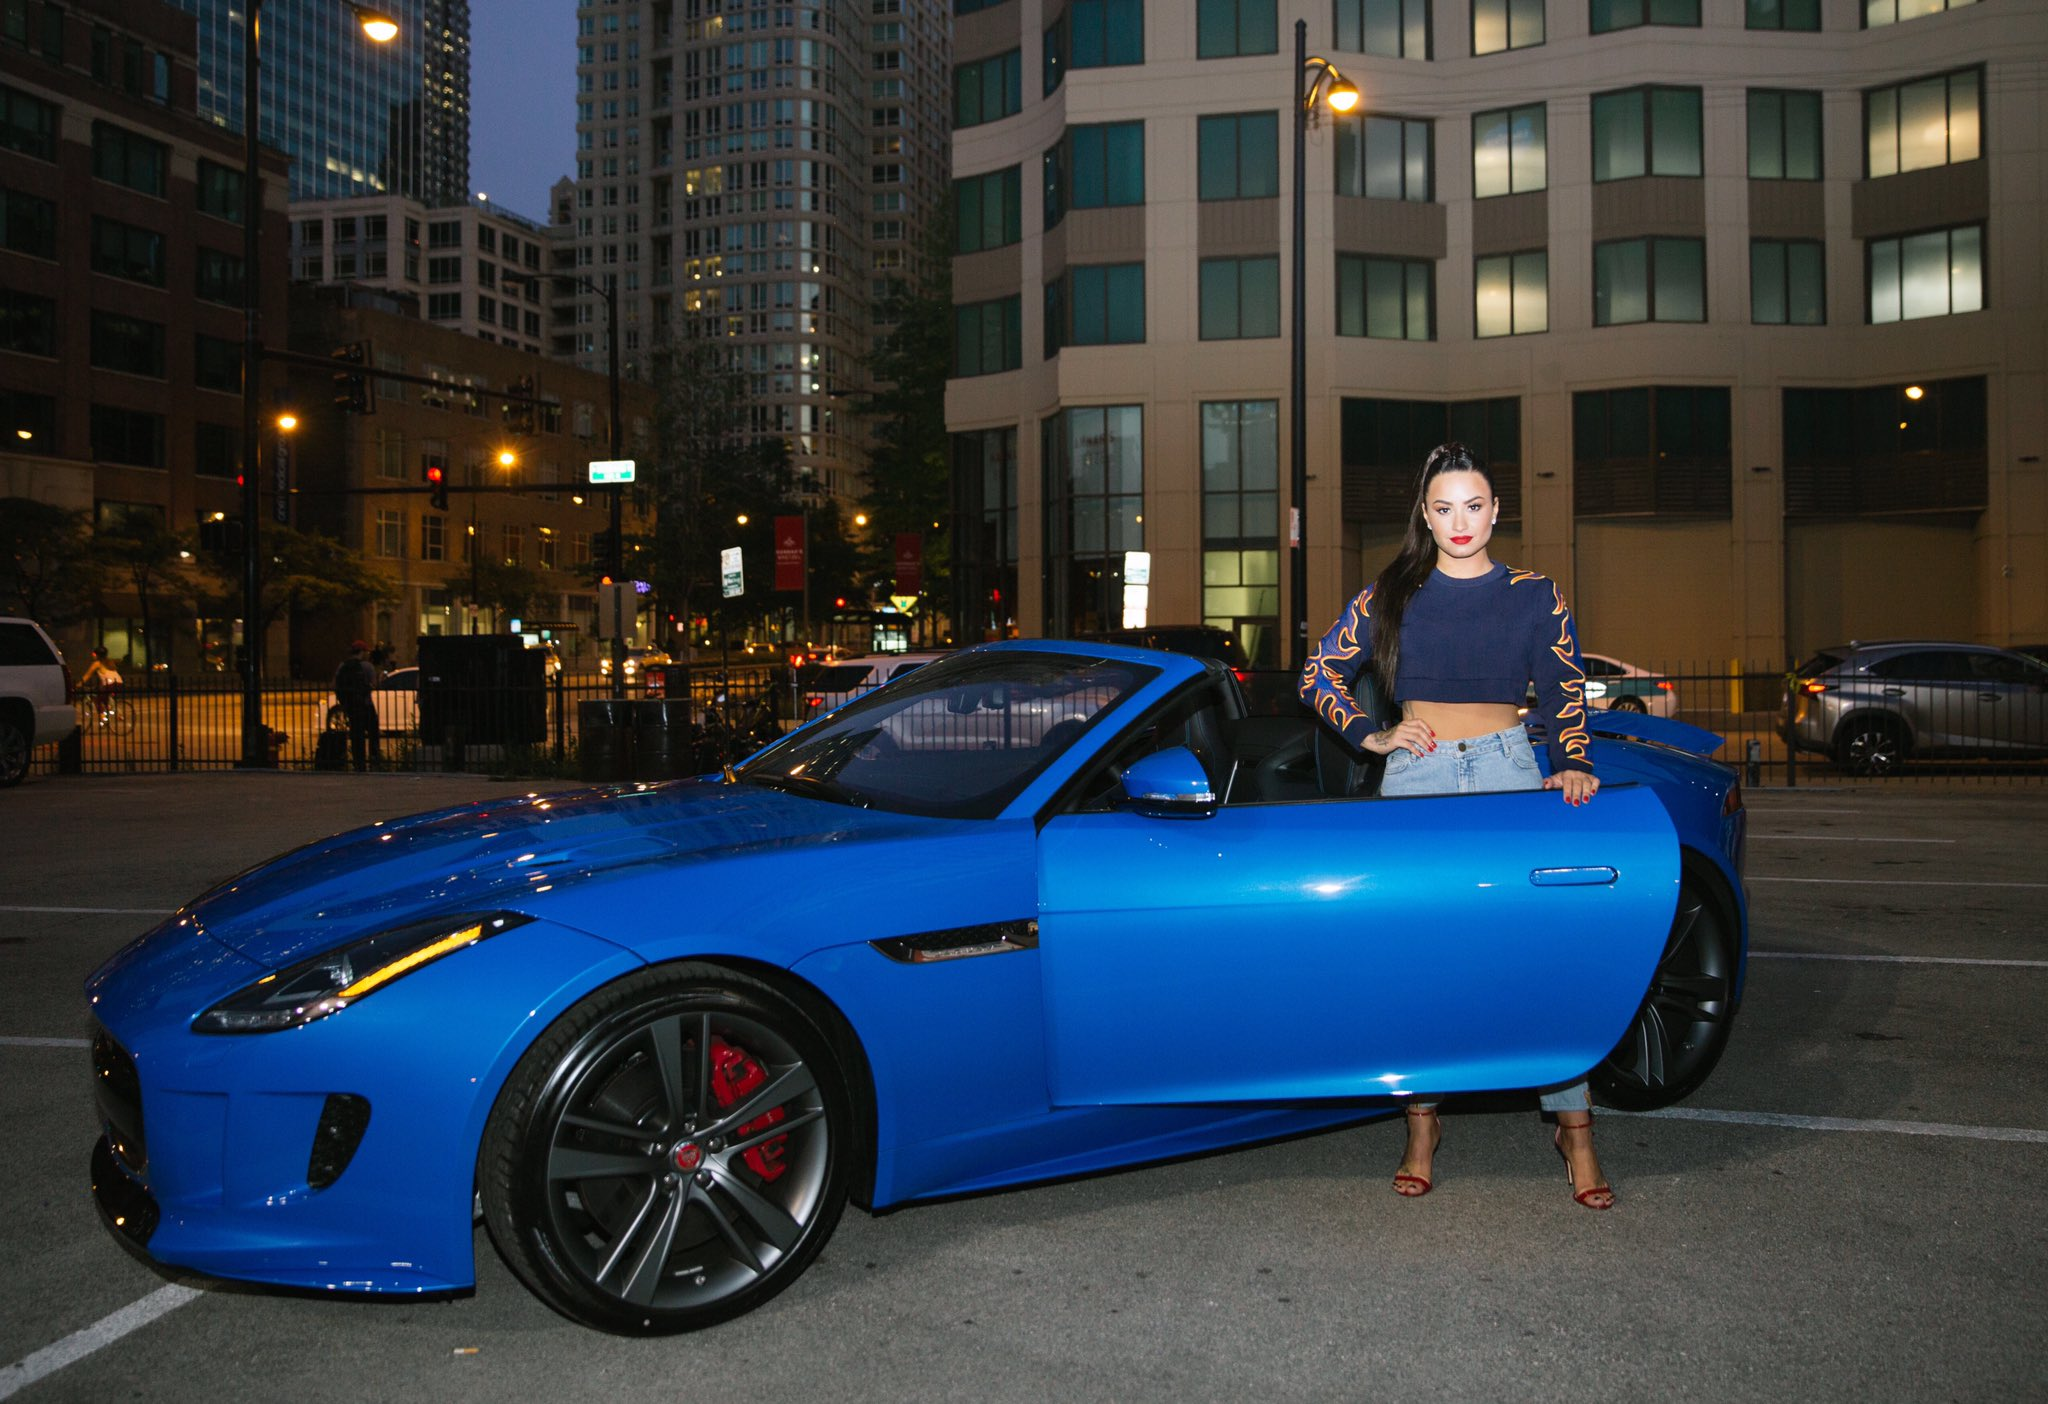 Thank you @JaguarUSA for getting me to my House Parties in style with the F-TYPE! #SorryNotSorry #ad https://t.co/nDEvKd7gew